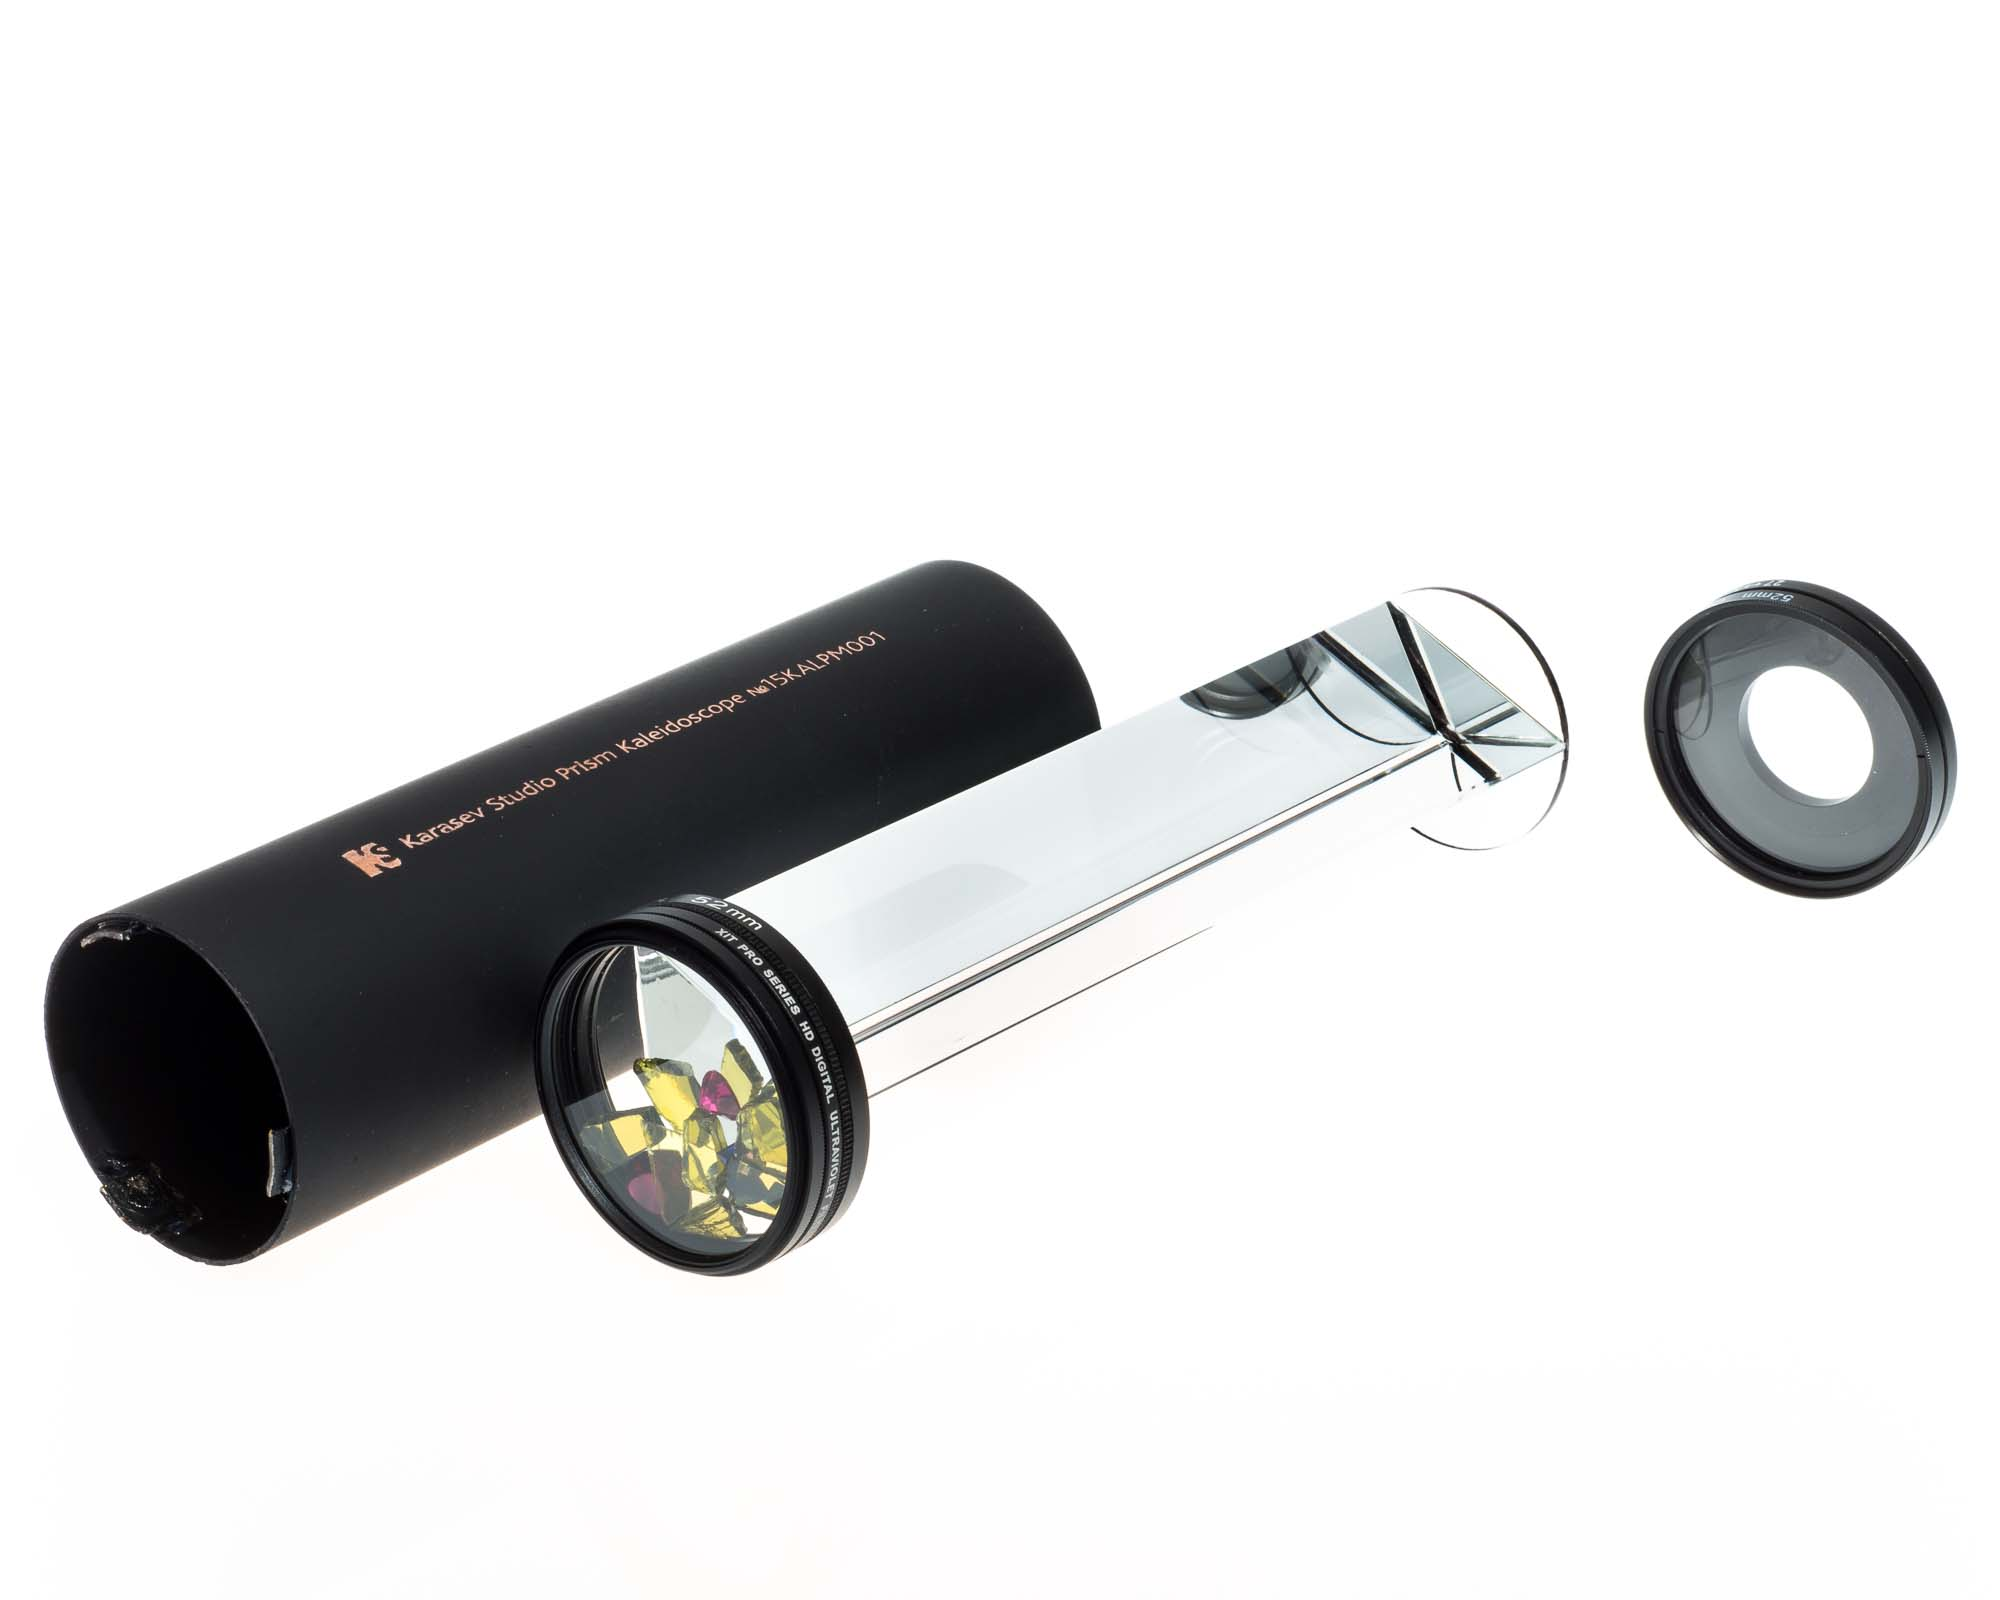 Casing, Prism Assembly with Capsule, and Cap with Magnifier